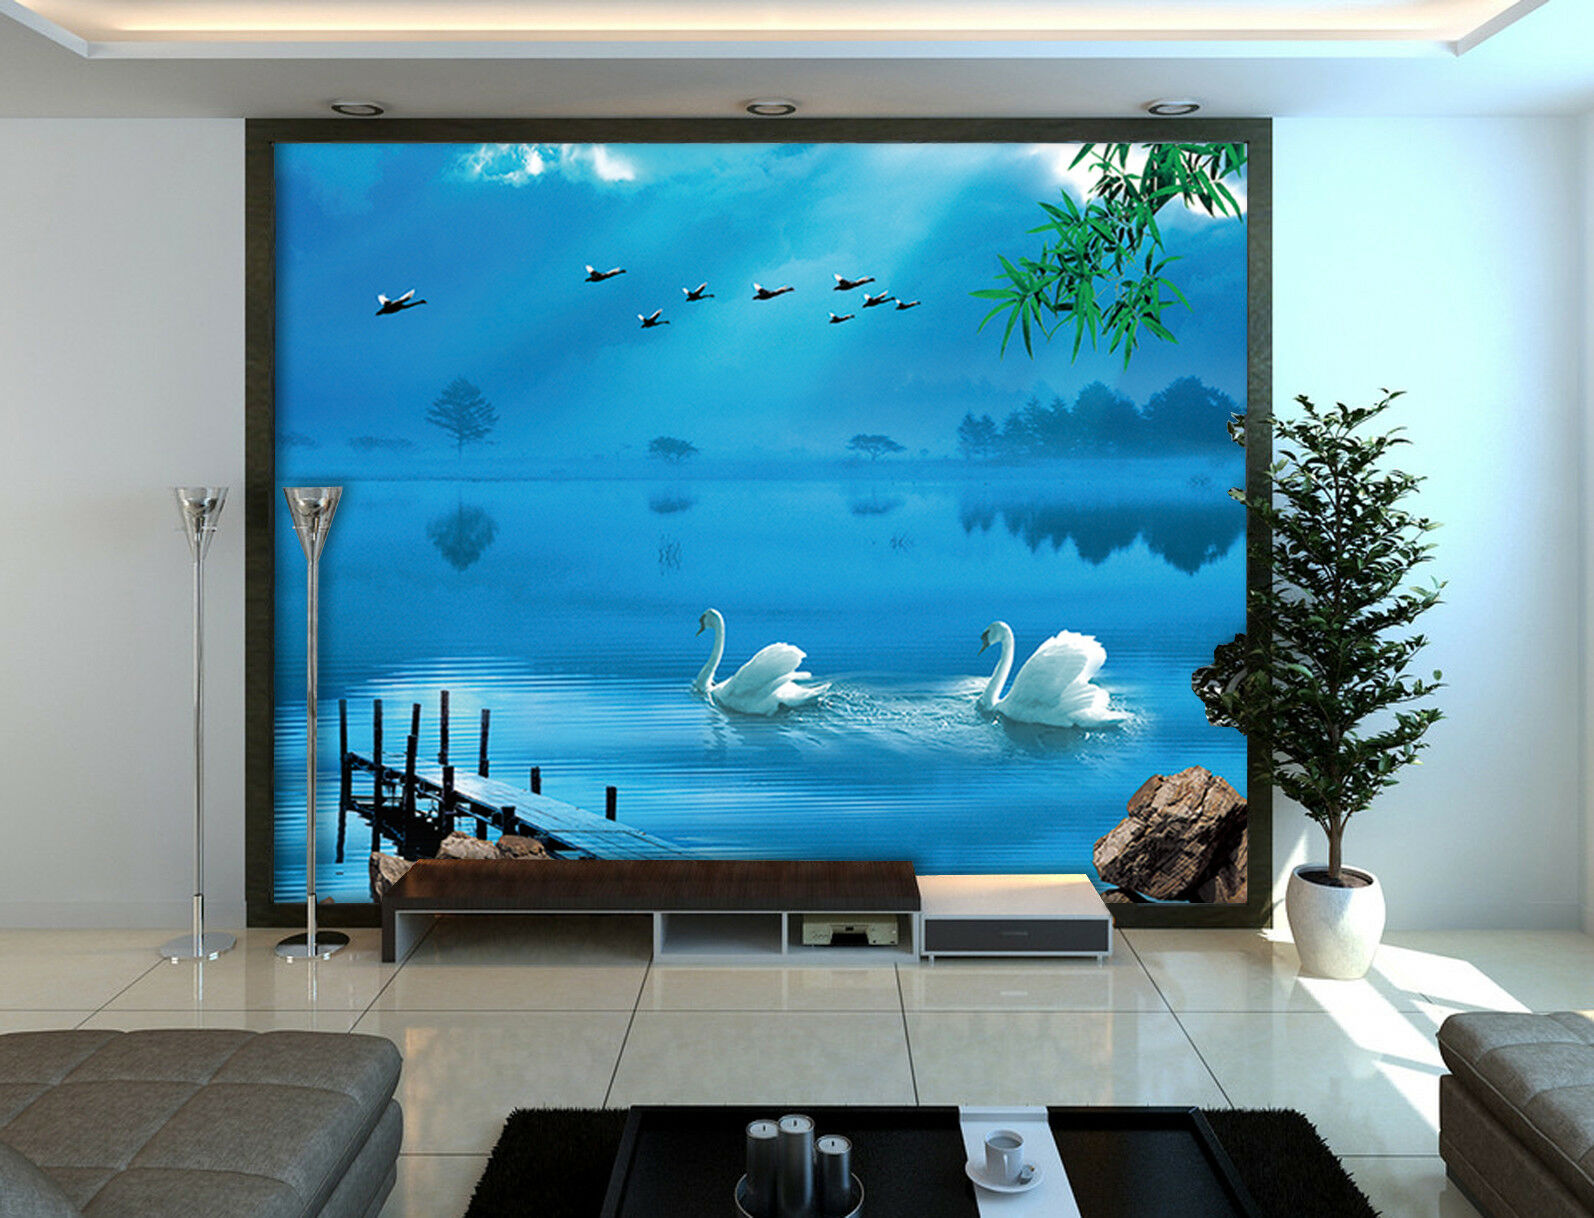 3D Sawn Night Wallpaper Murals Wall Print Wallpaper Mural AJ WALL AU Kyra